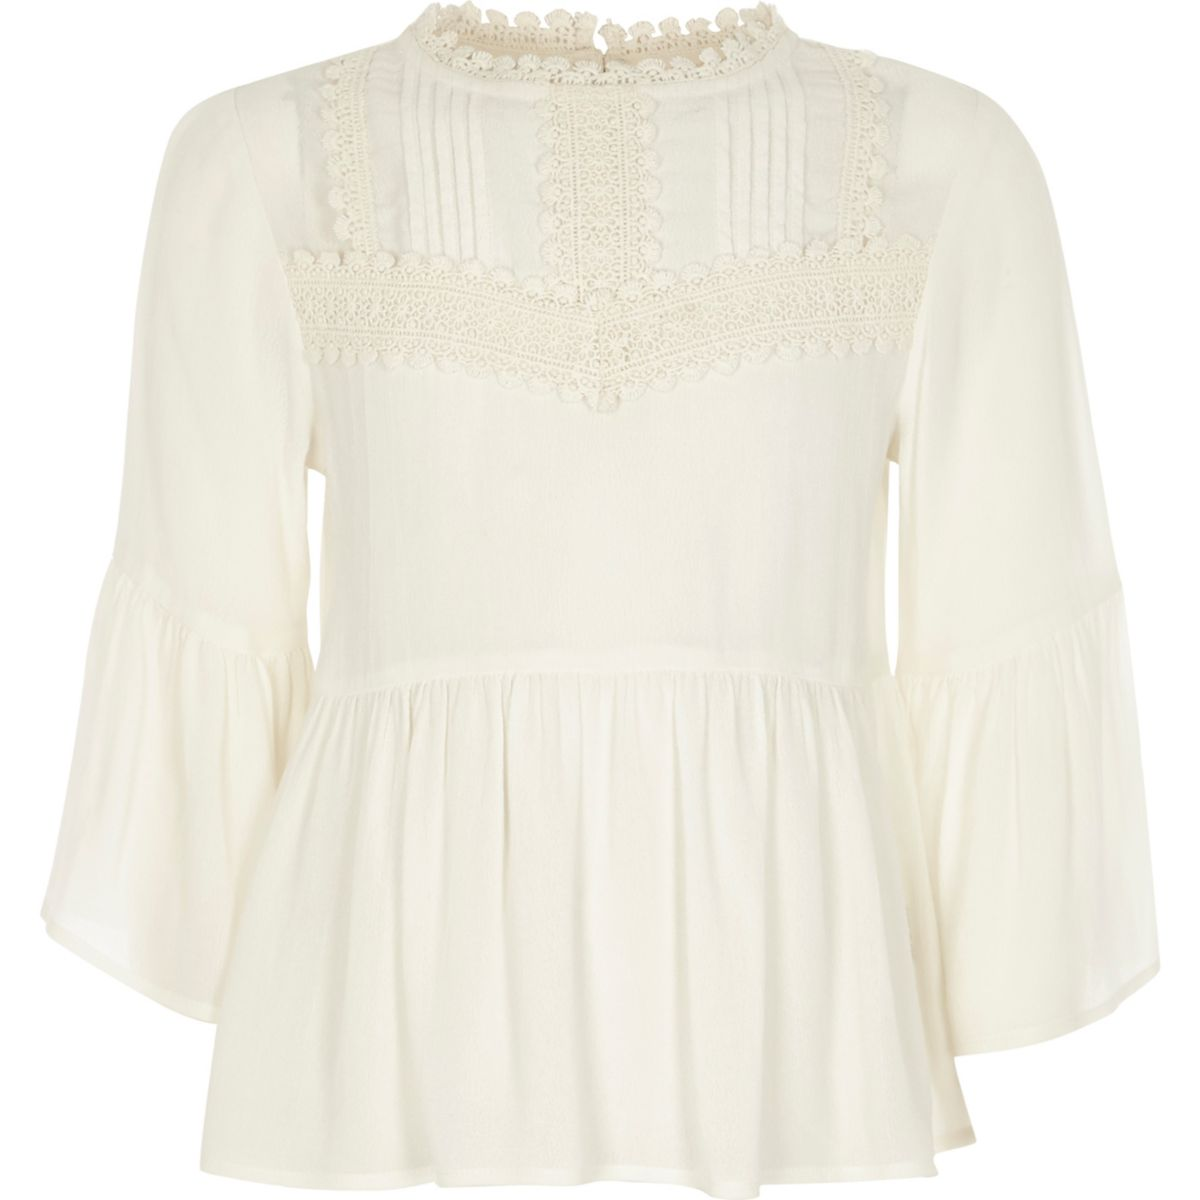 Girls cream peplum bell sleeve top